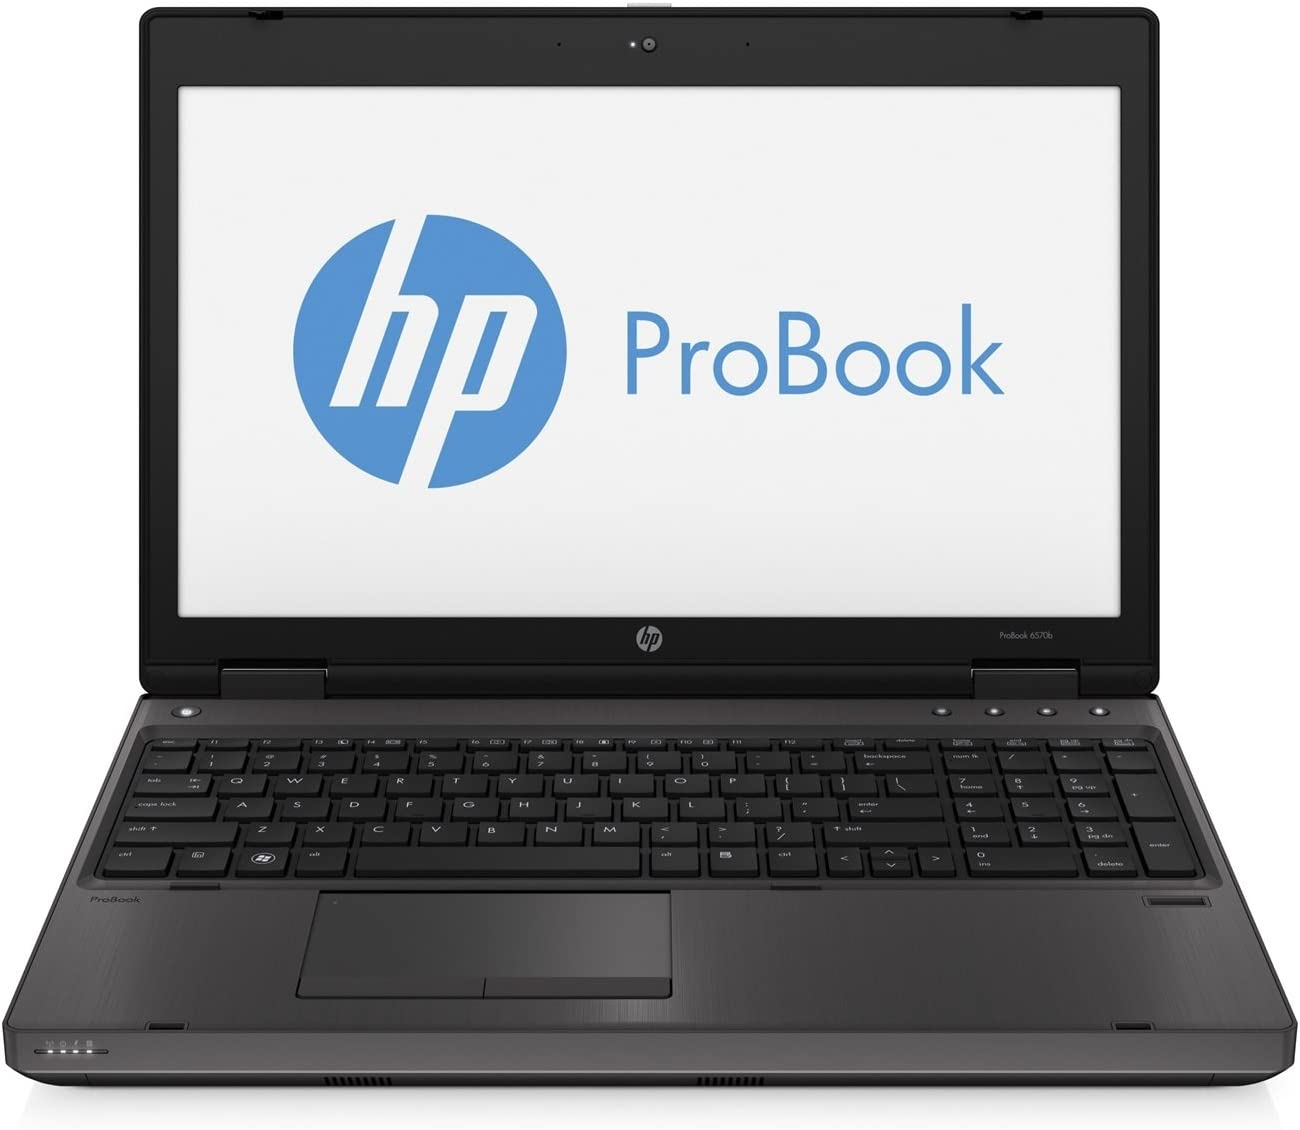 HP ProBook 6570b Notebook PC - Intel Core i5-3320M 2.5Ghz 8GB 128SSD DVDRW Windows 10 Professional (Renewed)